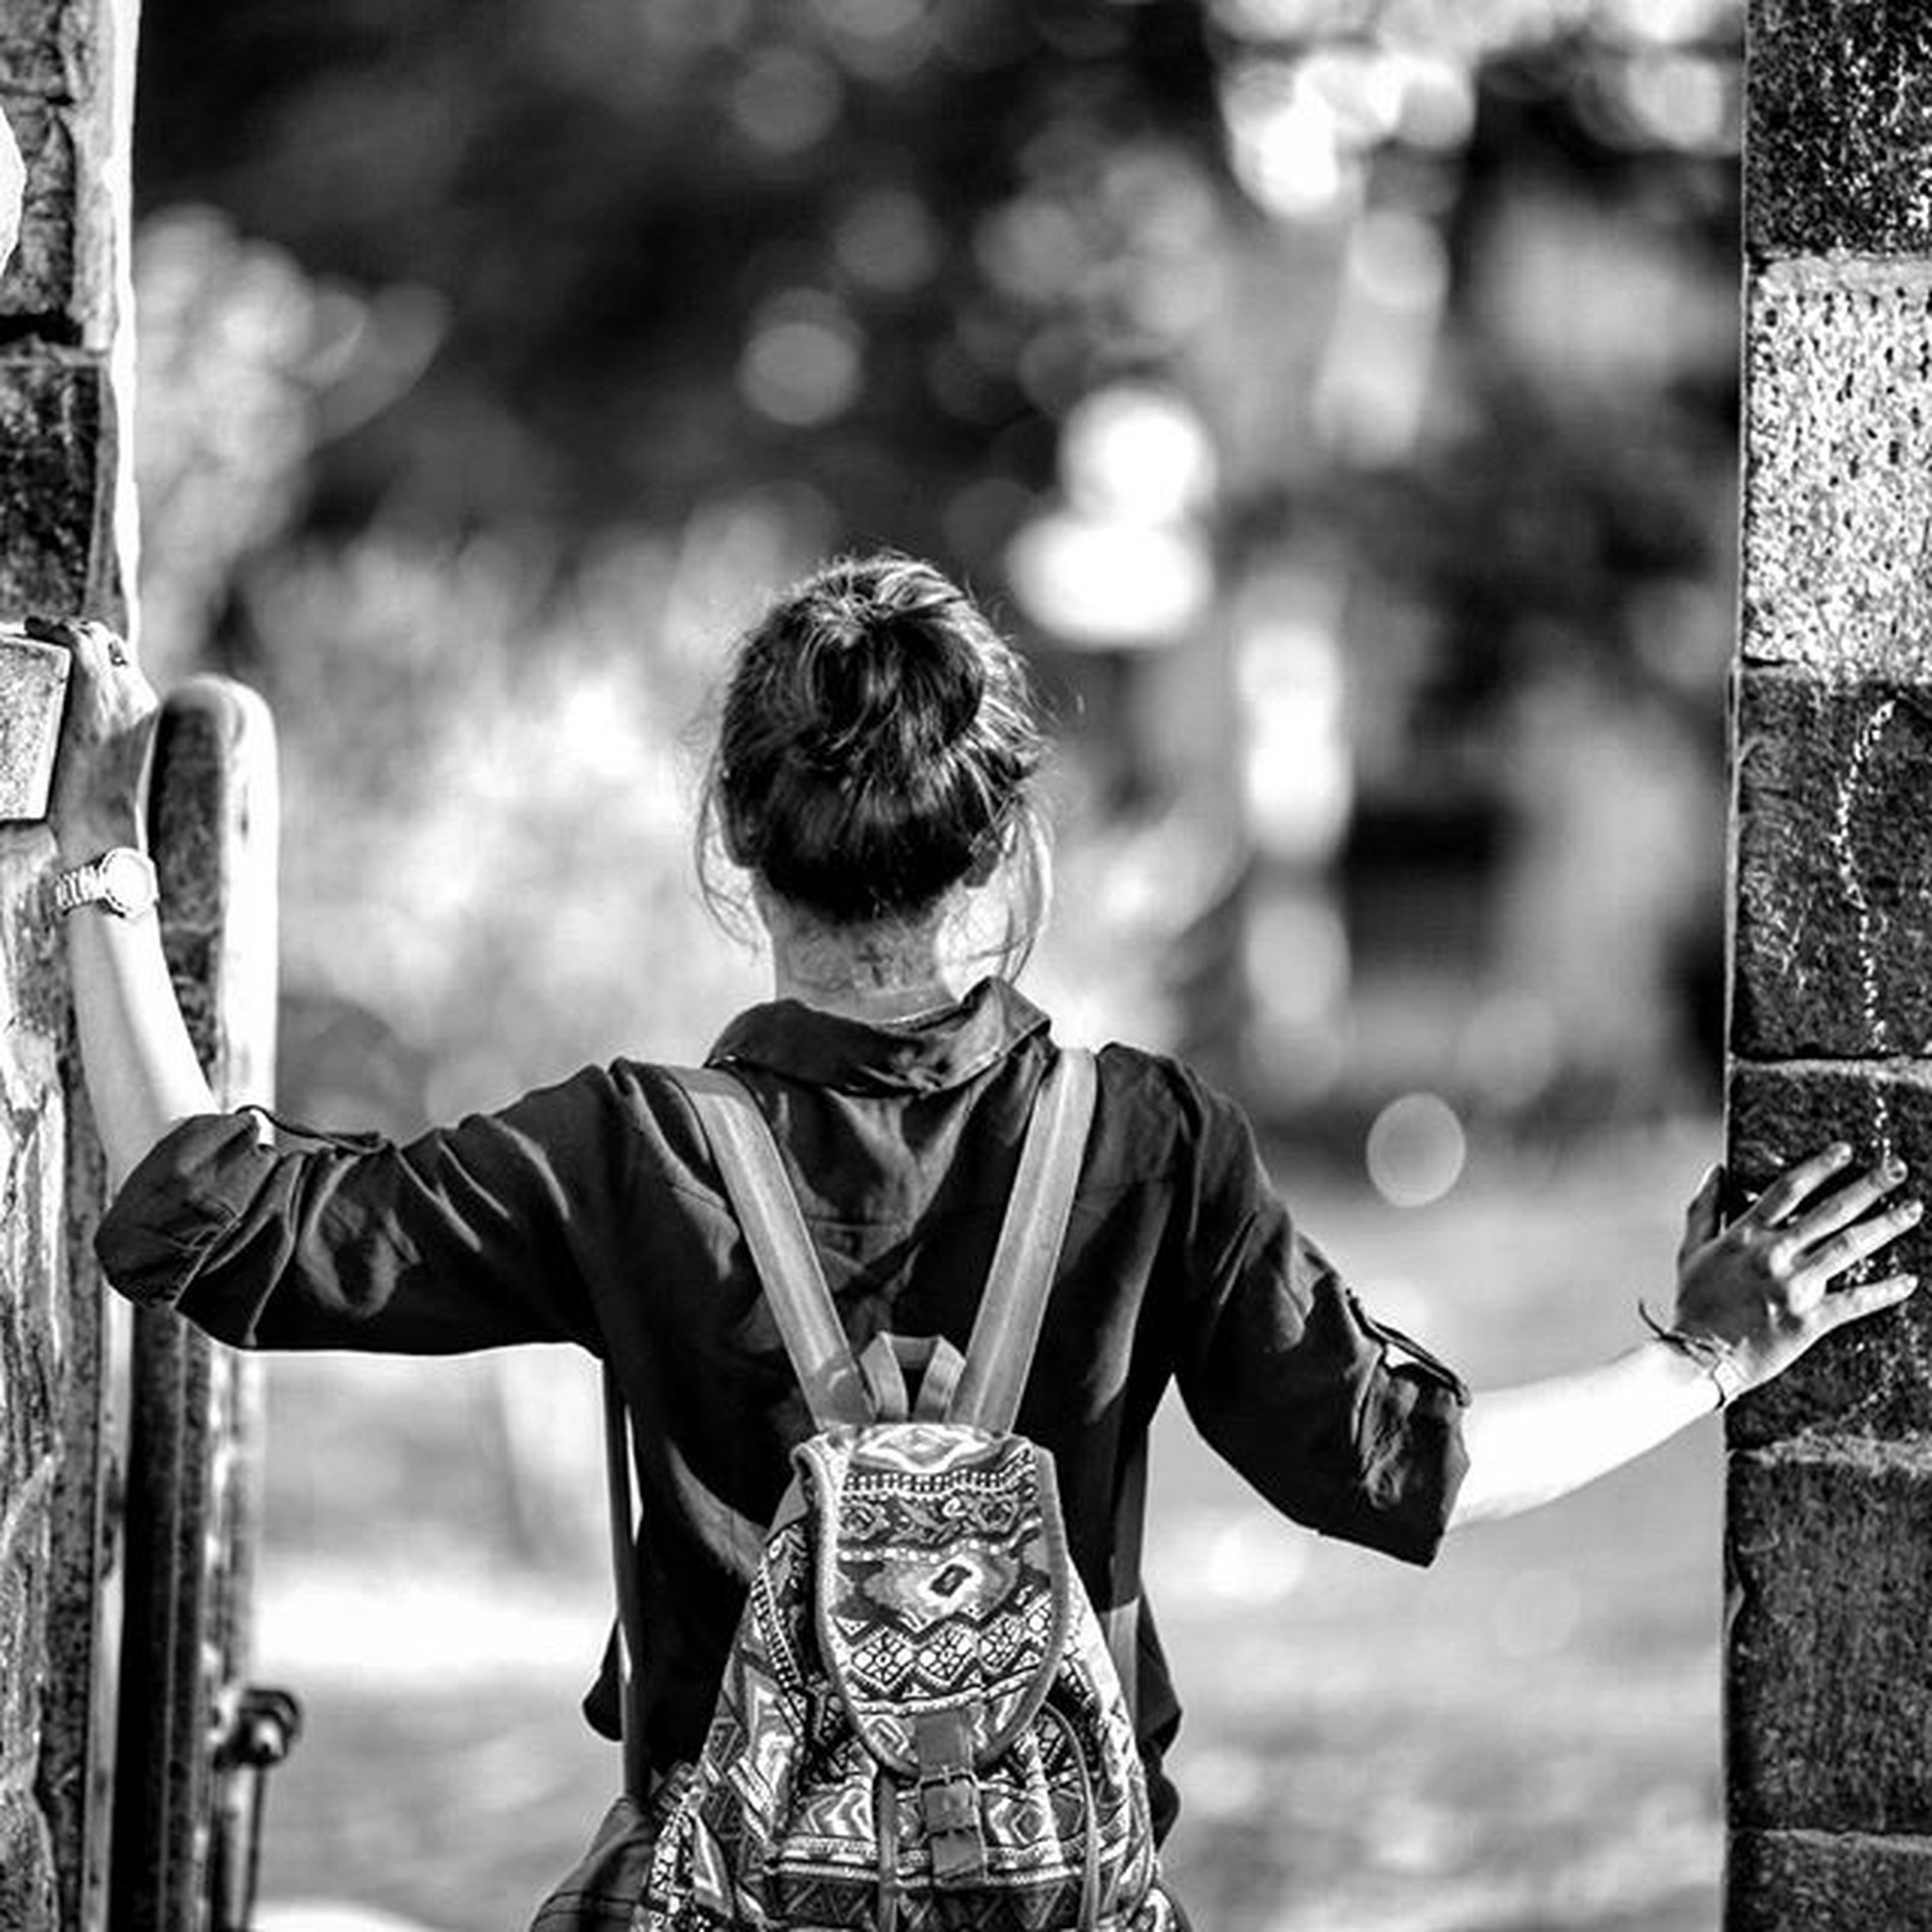 focus on foreground, lifestyles, art and craft, art, casual clothing, leisure activity, creativity, tree, day, outdoors, standing, holding, rear view, human representation, waist up, sculpture, park - man made space, childhood